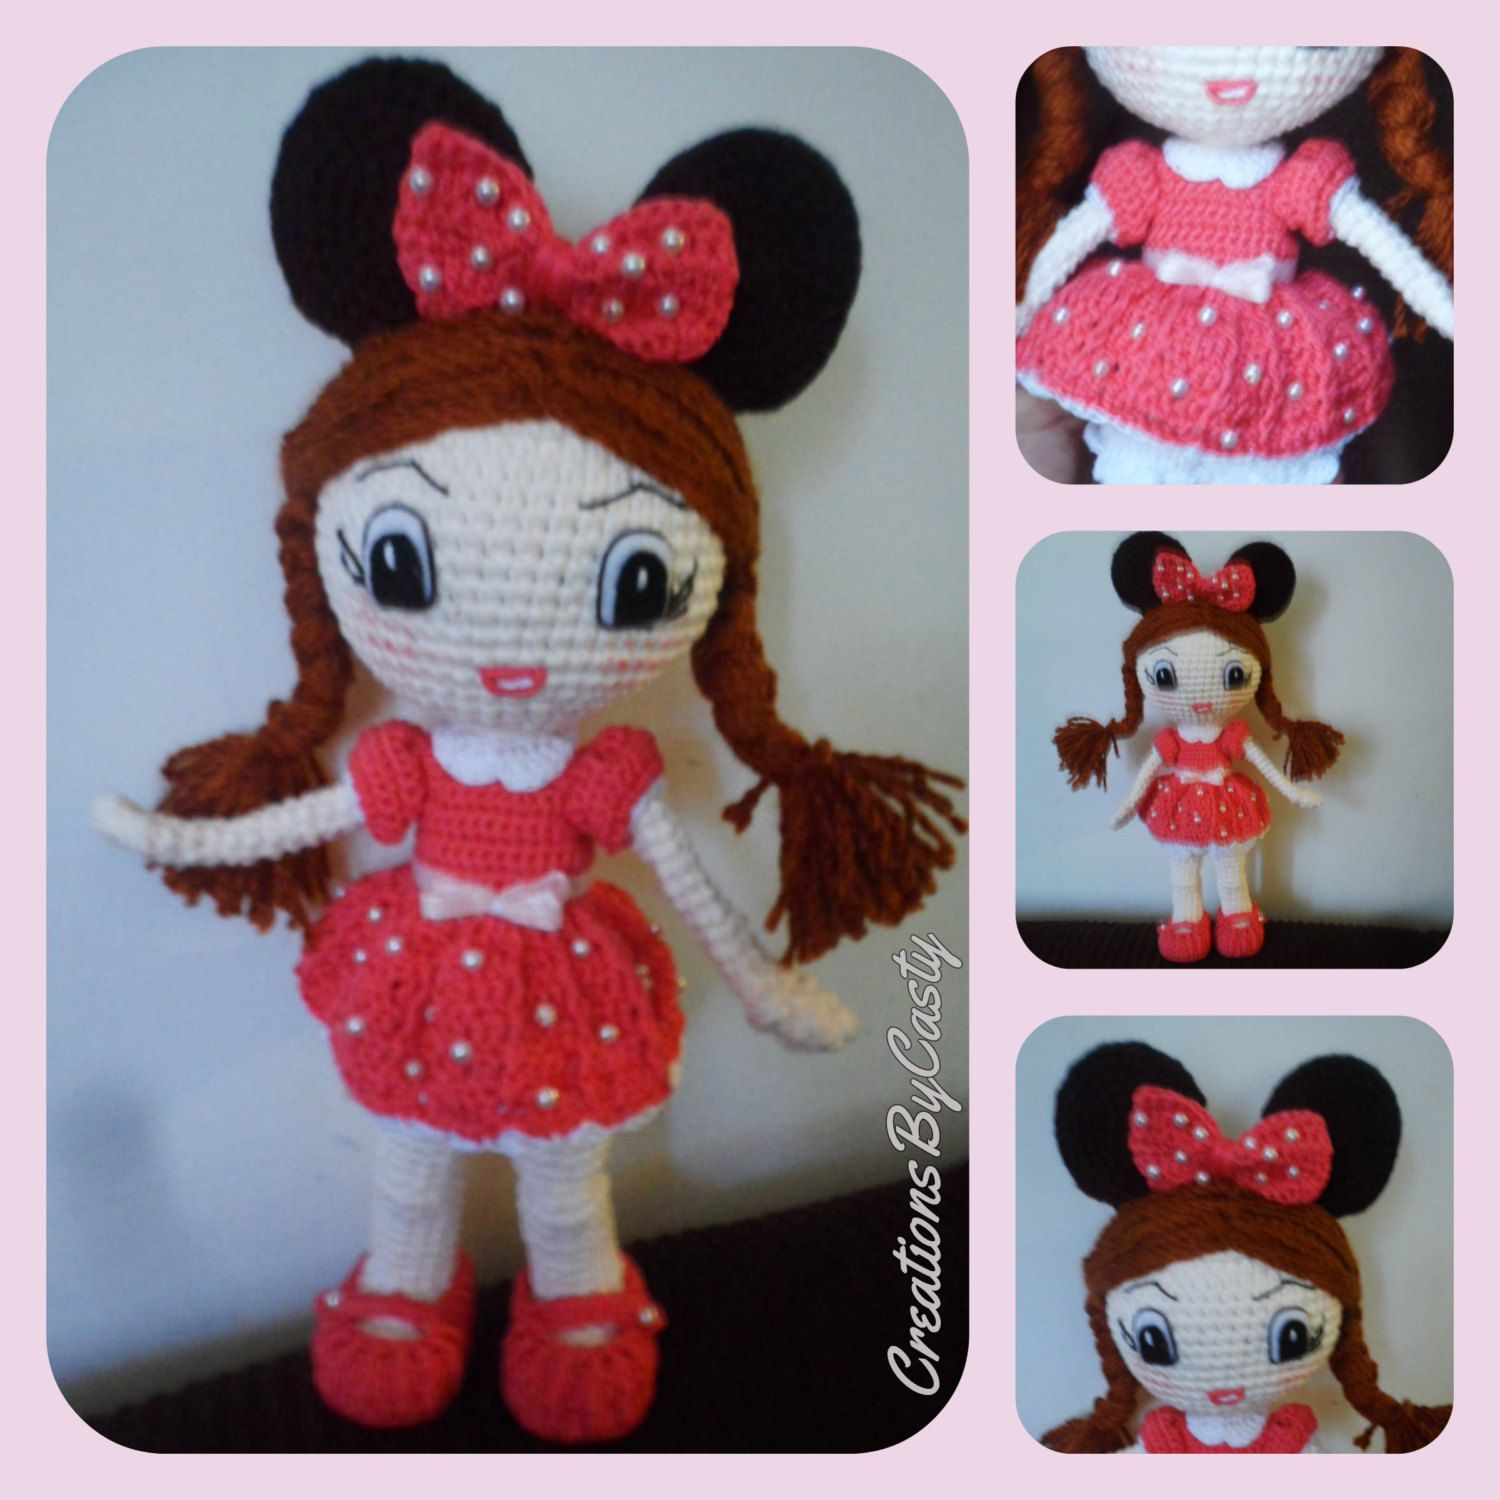 Minnie mouse doll igurumi crochet by creationsofcasty on etsy minnie mouse doll igurumi crochet by creationsofcasty on etsy bankloansurffo Choice Image